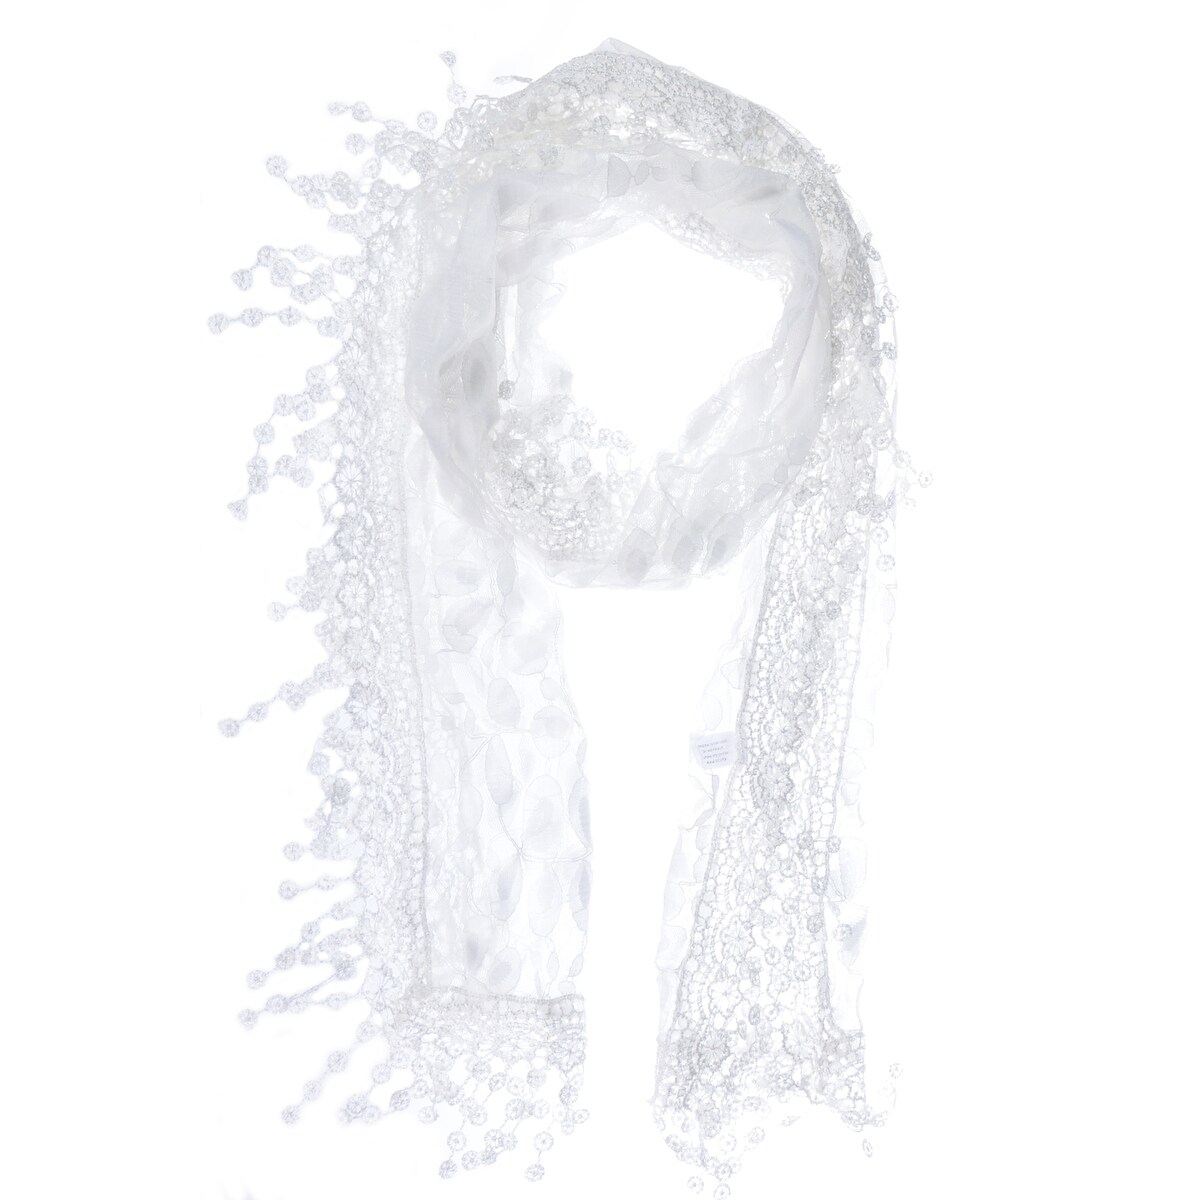 Thumbnail 45, Dreamy Lace Scarf with Leaf Design and Tassels. Changes active main hero.